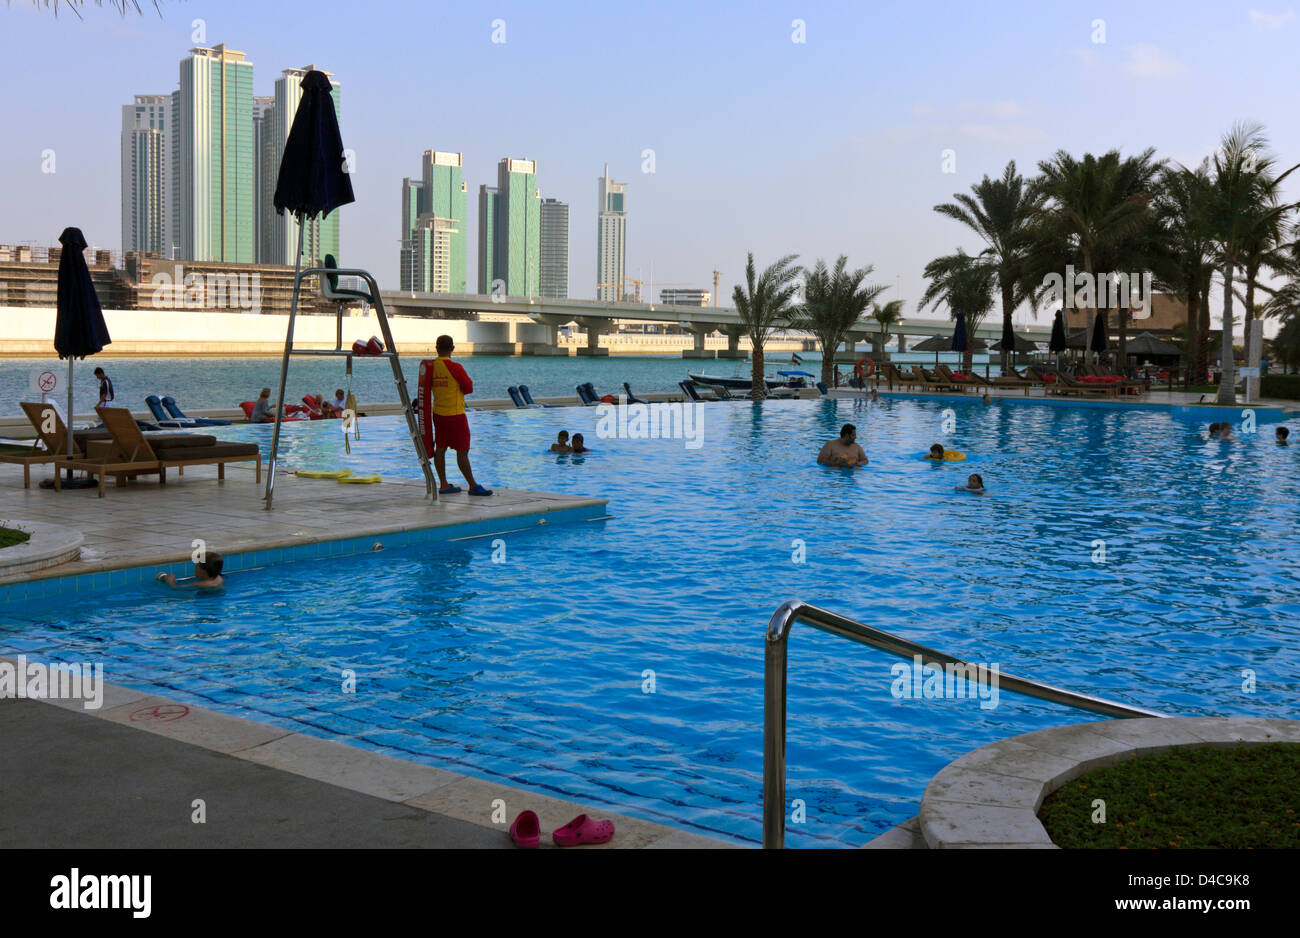 Reem stock photos reem stock images alamy for Swimming pool offers in abu dhabi